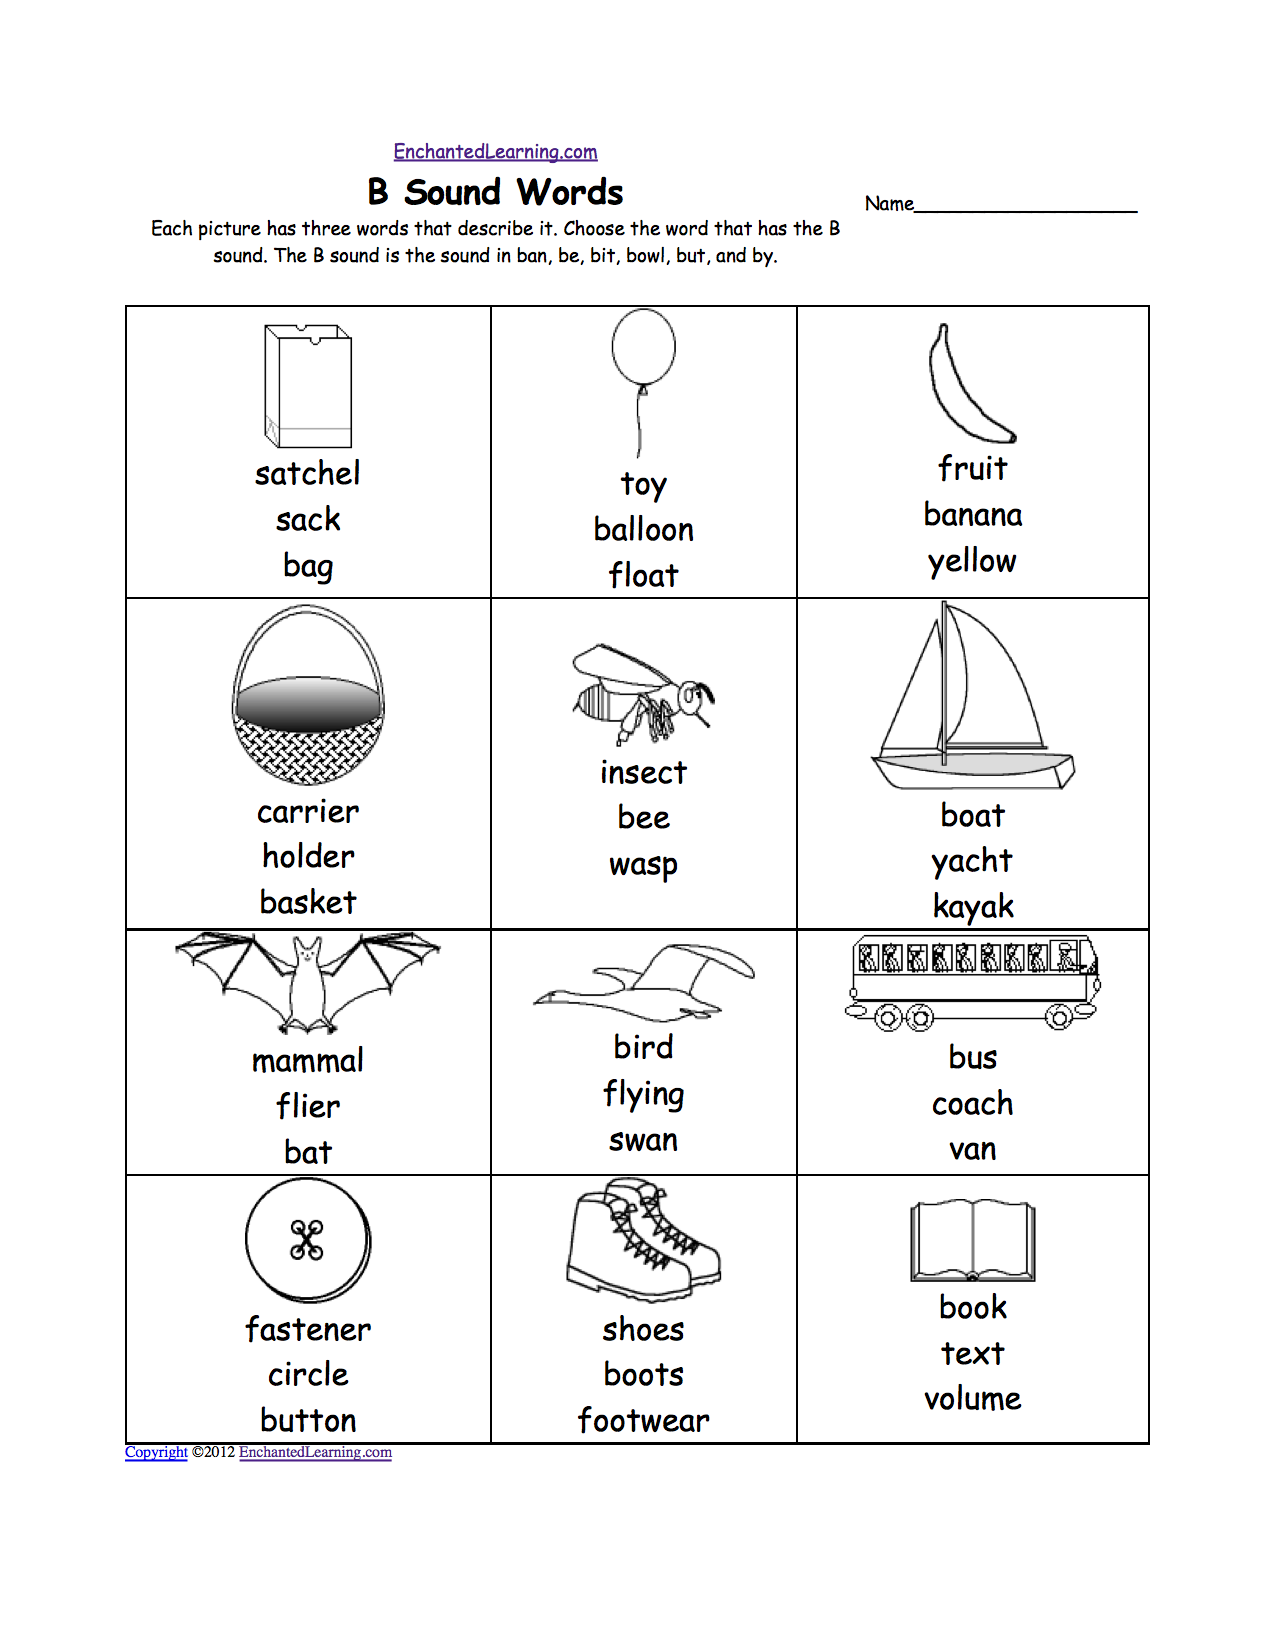 Aldiablosus  Unique Phonics Worksheets Multiple Choice Worksheets To Print  With Fair Quotbquot Sound Phonics Worksheet Multiple Choice Each Picture Has Three Words That Describe It Choose The Word That Has A Quotbquot Sound The Quotbquot Sound Is The Sound  With Divine Rocket Math Addition Worksheets Online Also Printable Letter Worksheets For Kindergarten In Addition Emotional Regulation Worksheet And Biology Levels Of Organization Worksheet As Well As Free Worksheets For Preschoolers Printables Additionally Climate Zone Worksheet From Enchantedlearningcom With Aldiablosus  Fair Phonics Worksheets Multiple Choice Worksheets To Print  With Divine Quotbquot Sound Phonics Worksheet Multiple Choice Each Picture Has Three Words That Describe It Choose The Word That Has A Quotbquot Sound The Quotbquot Sound Is The Sound  And Unique Rocket Math Addition Worksheets Online Also Printable Letter Worksheets For Kindergarten In Addition Emotional Regulation Worksheet From Enchantedlearningcom